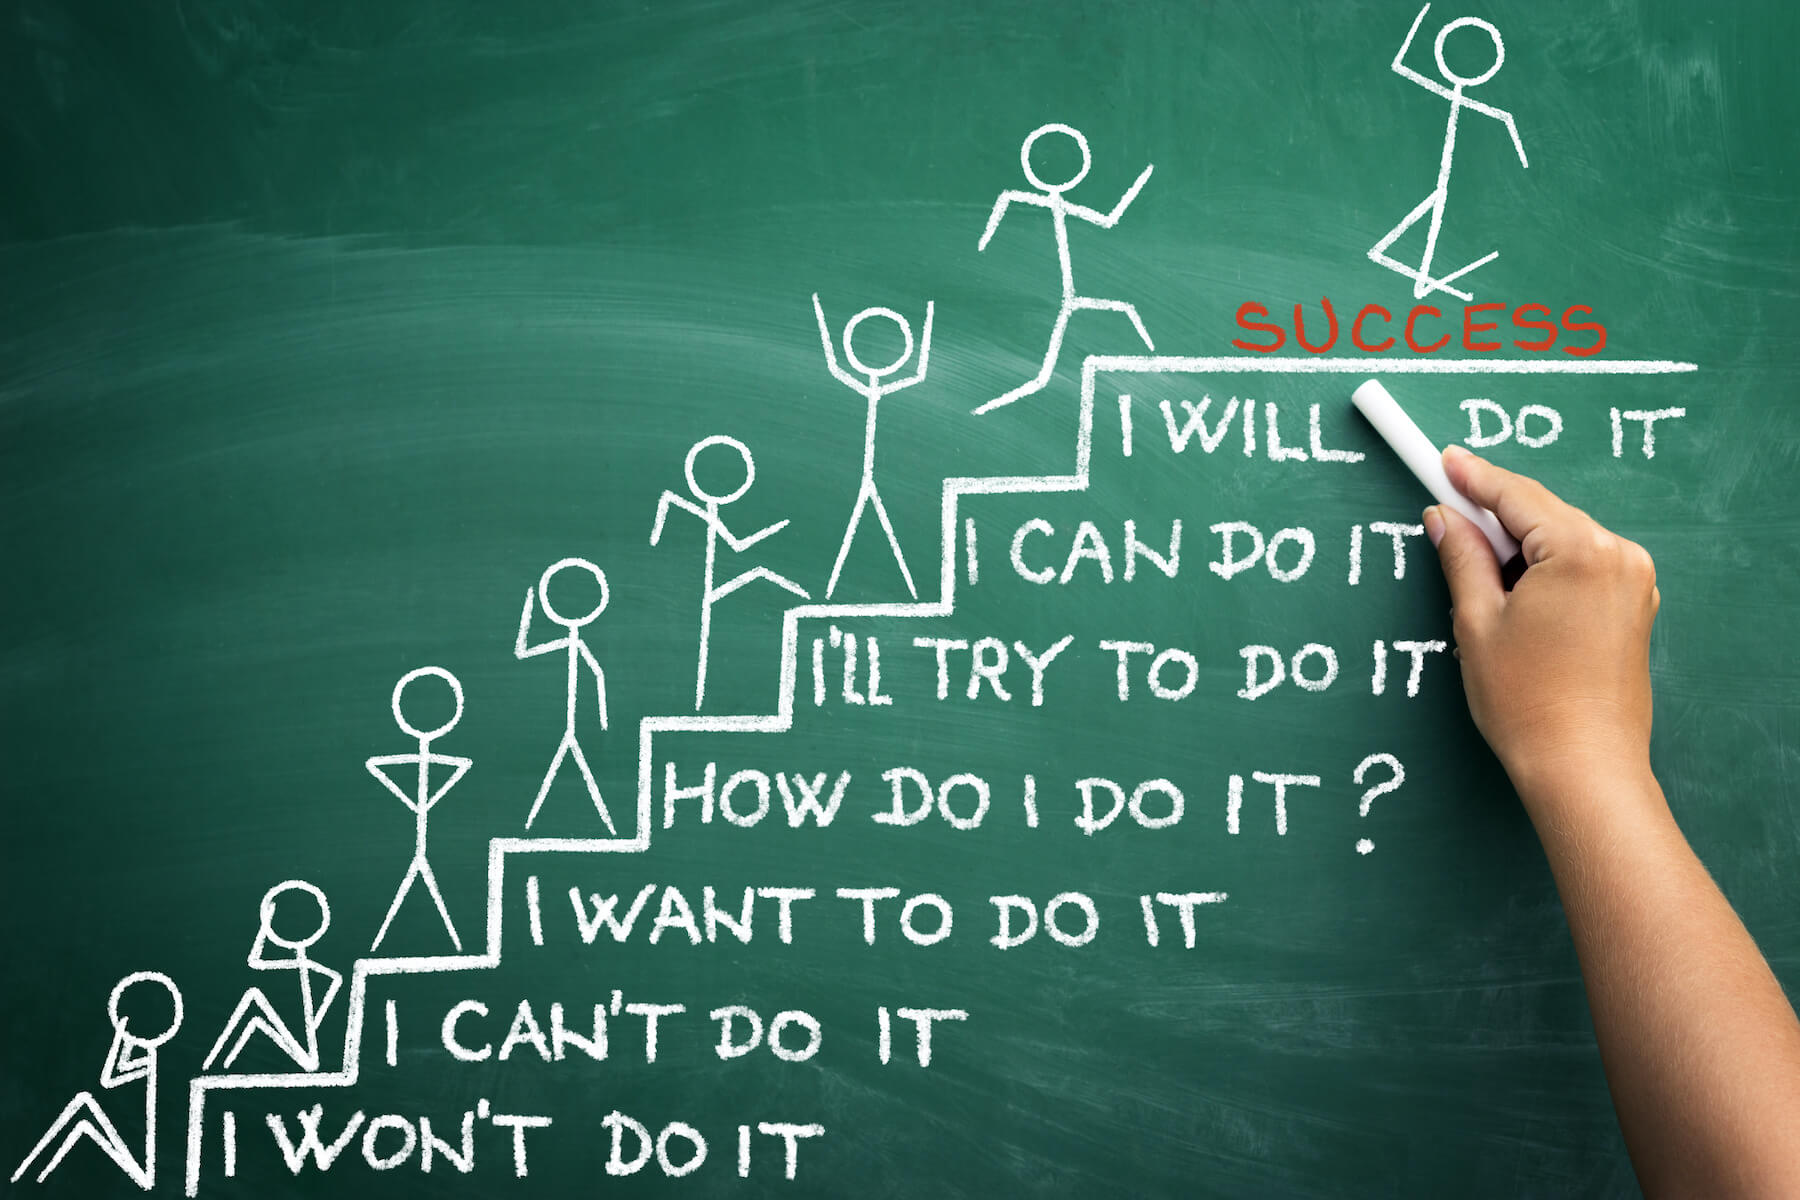 5 PRACTICAL TIPS TO HELP YOU GET MOTIVATED